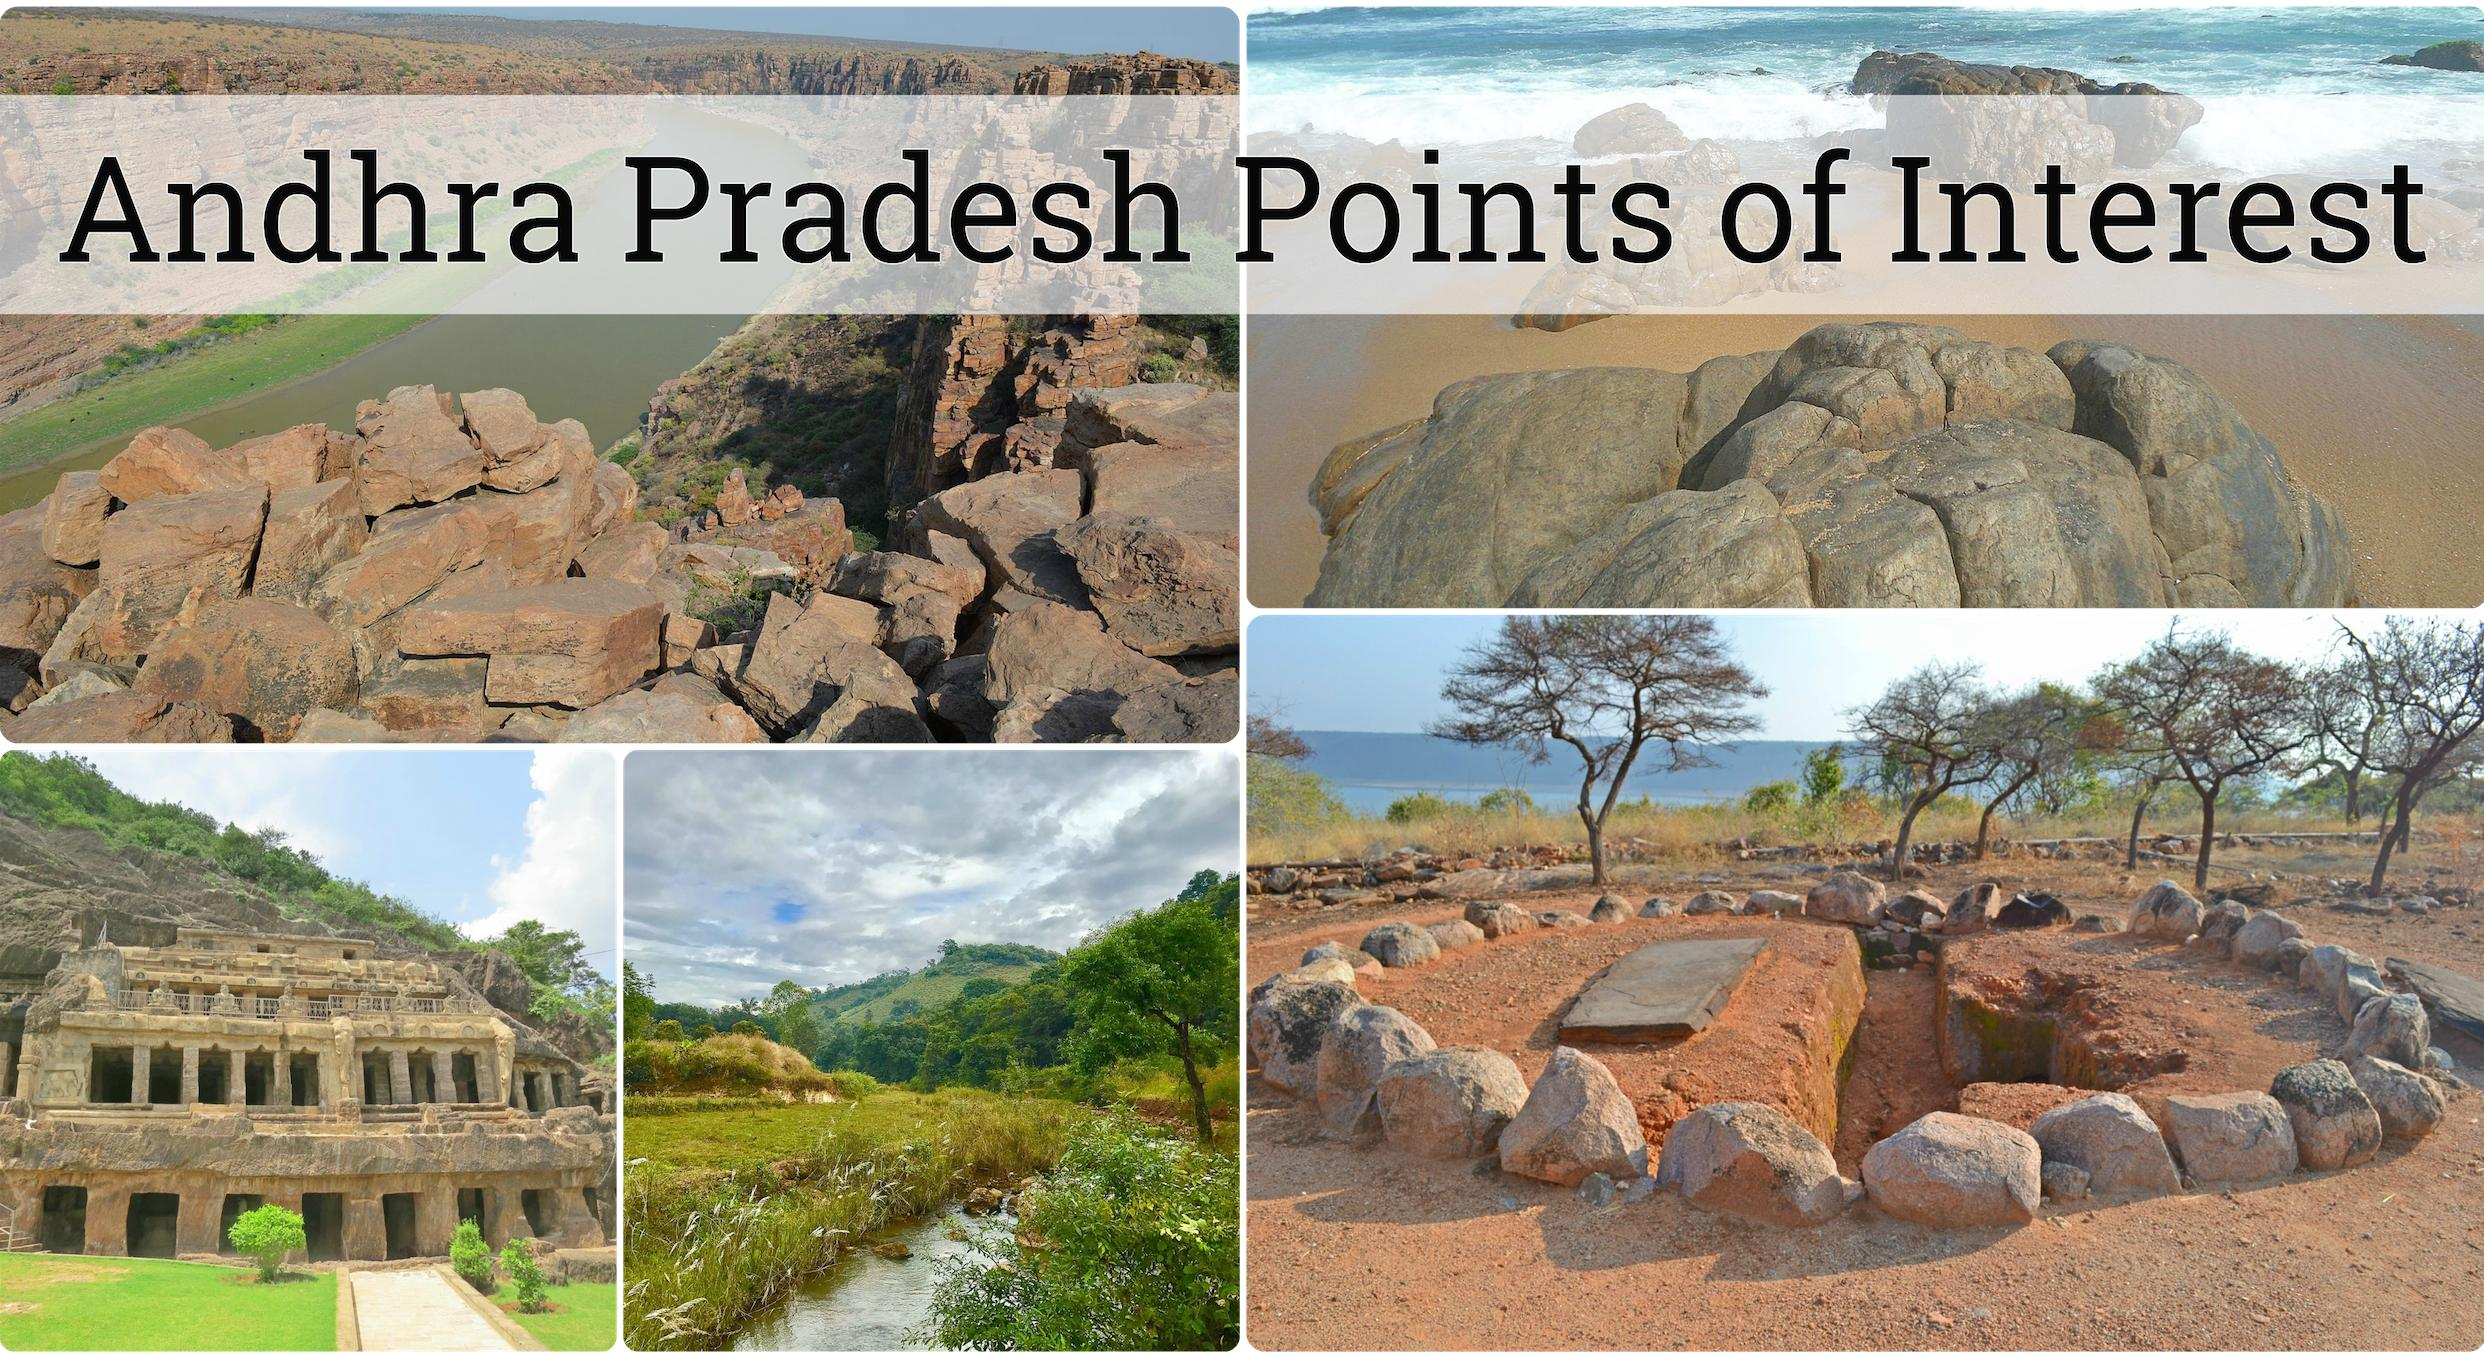 Andhra Pradesh points of interest.jpg